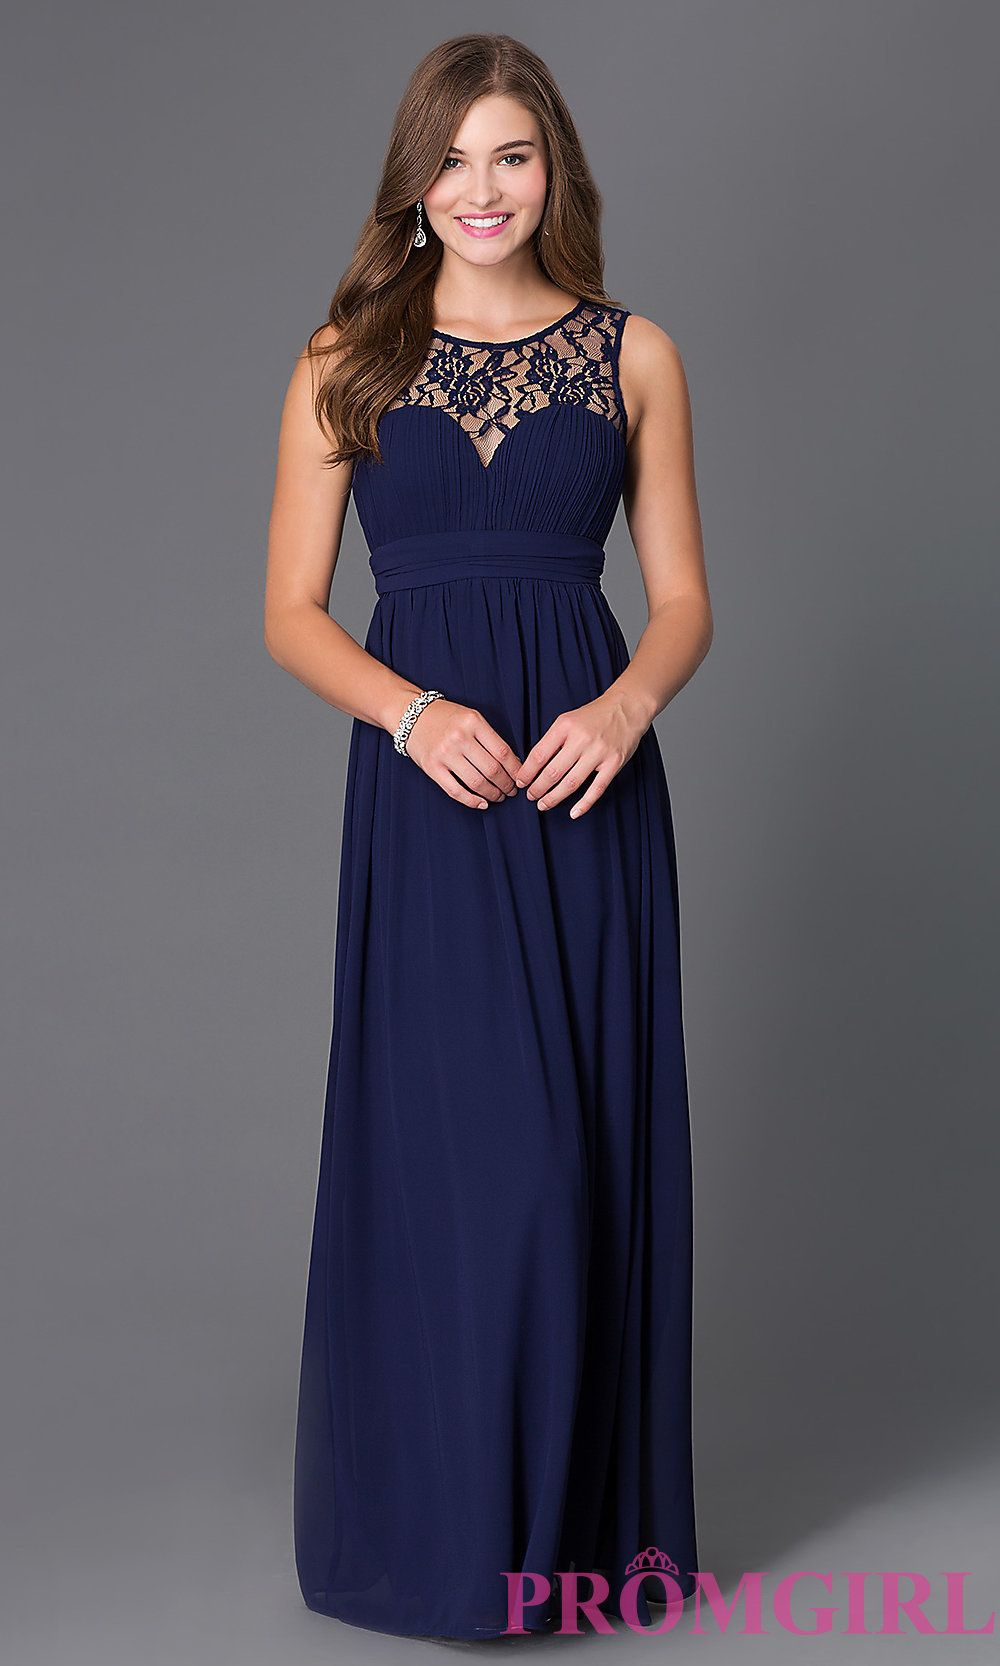 Sleeveless floor length dress with lace embellished neckline